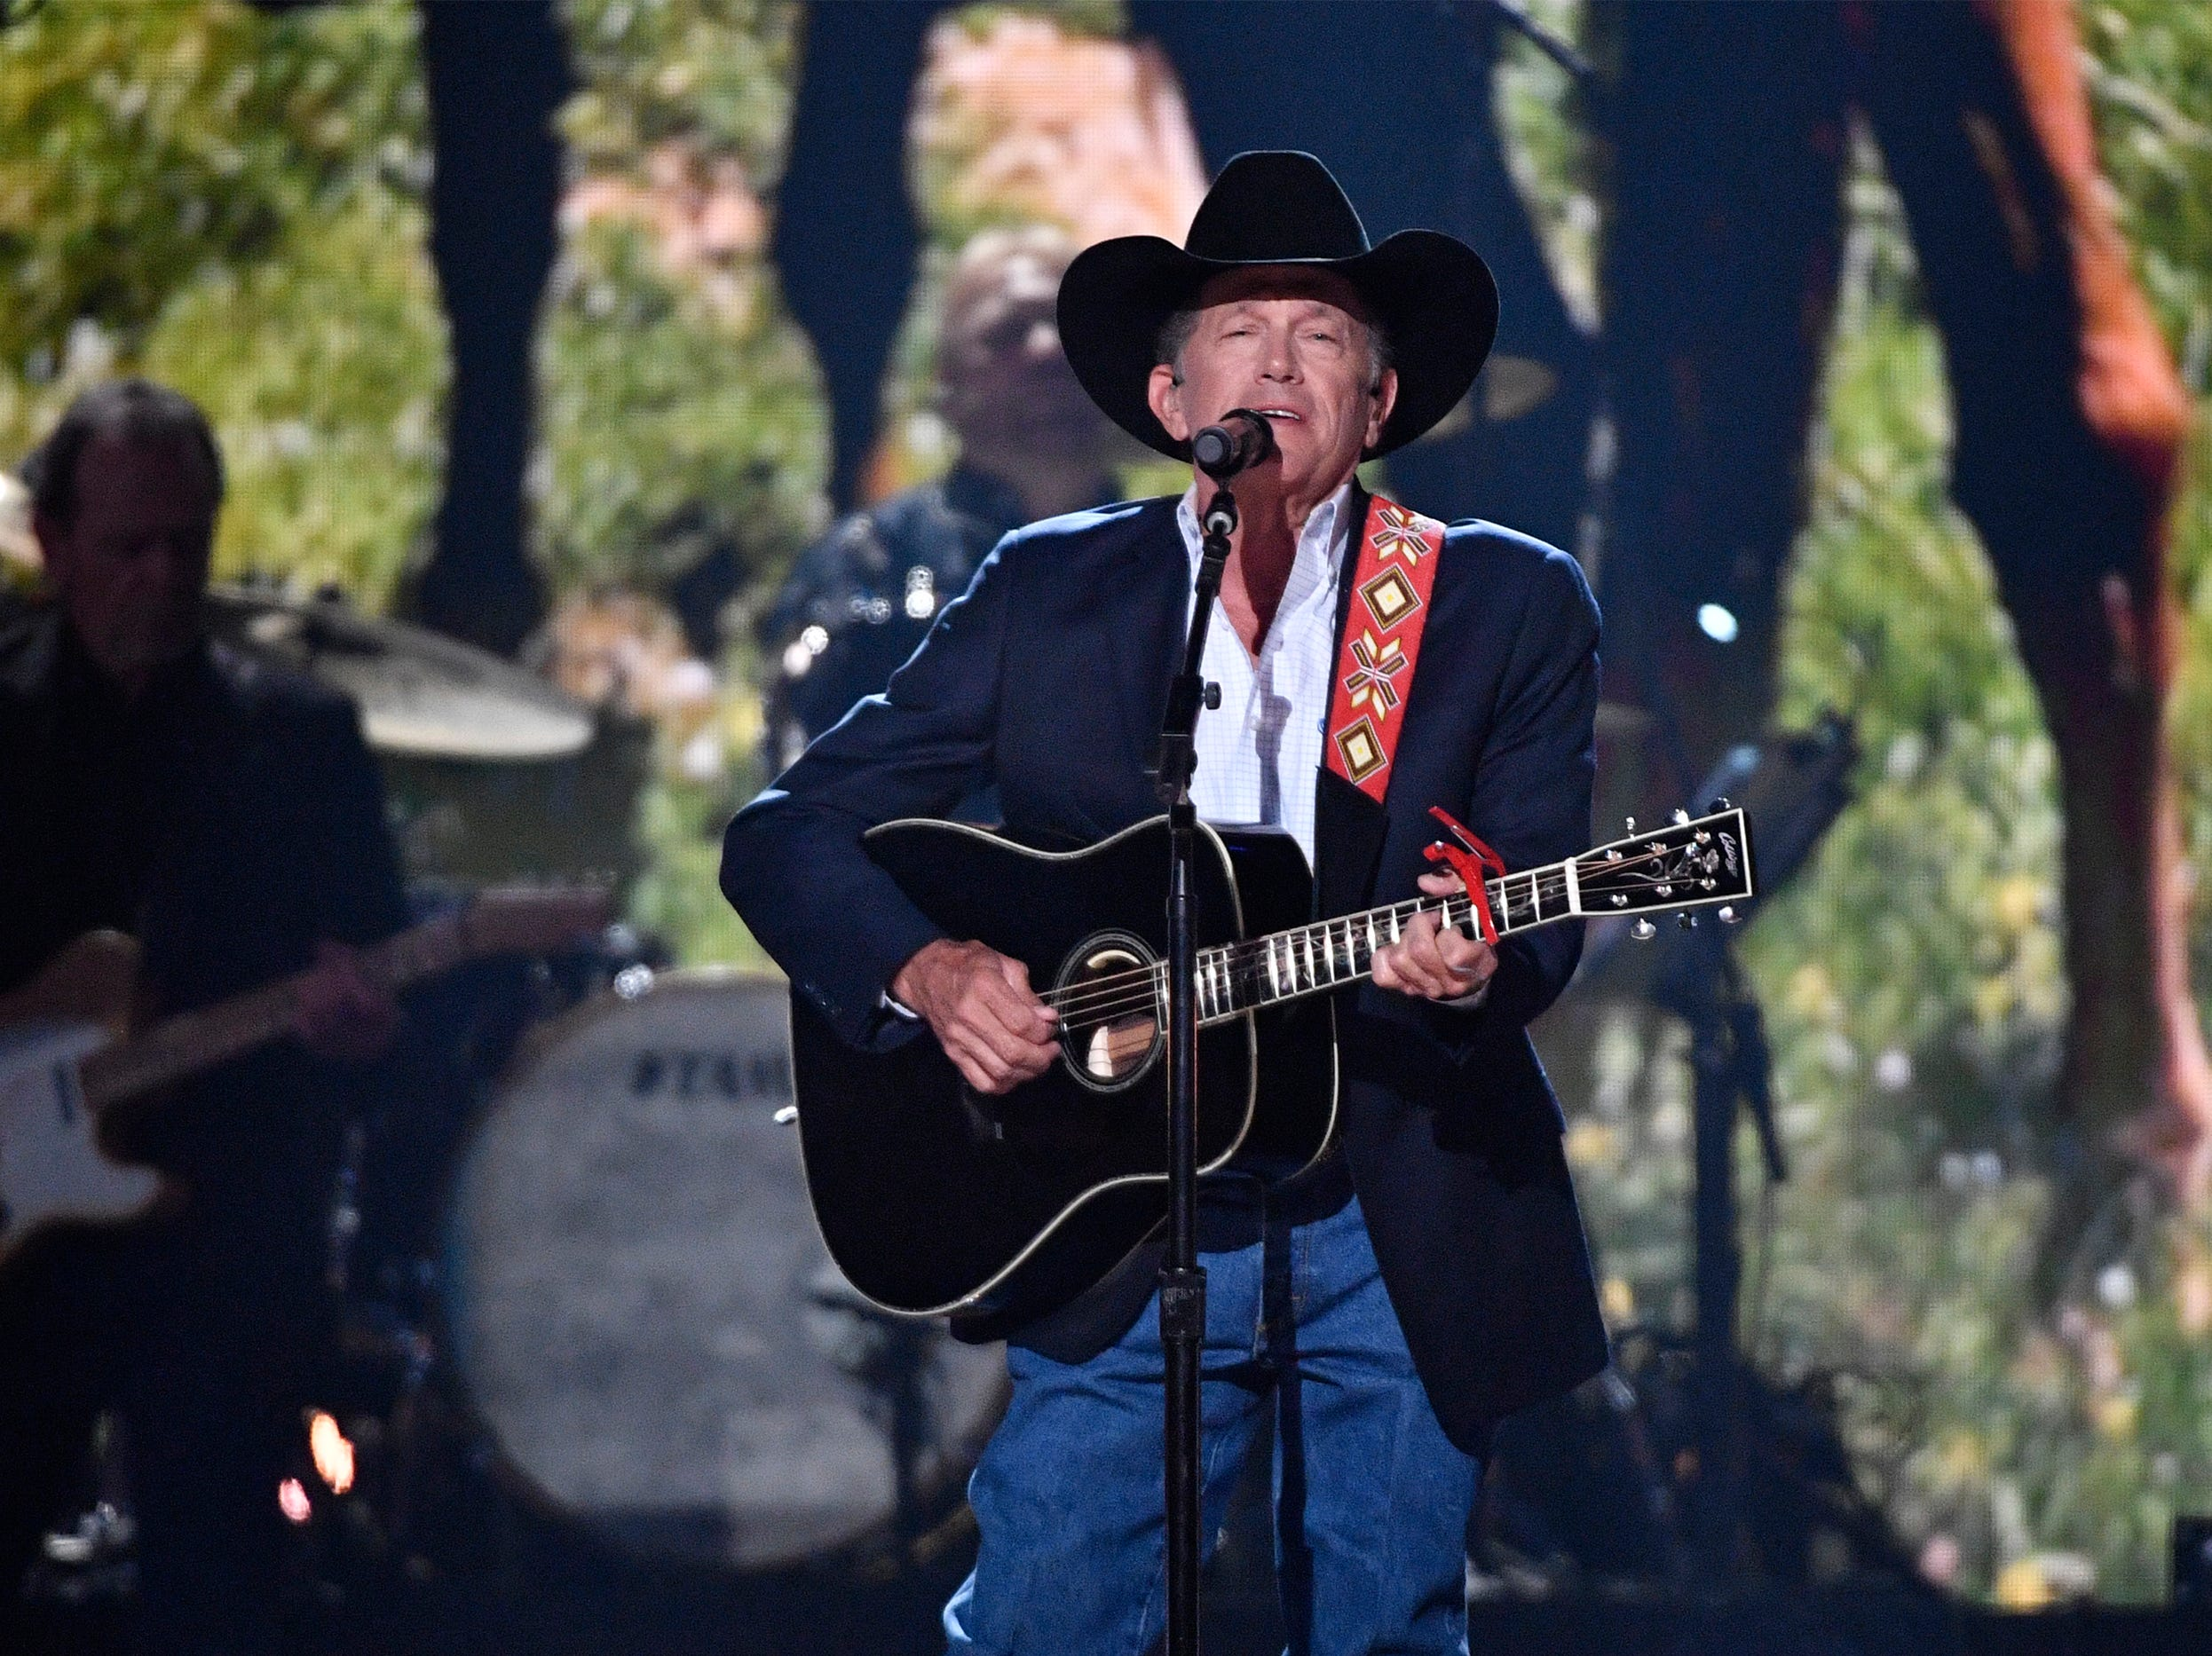 George Strait performs at the 54TH Academy of Country Music Awards Sunday, April 7, 2019, in Las Vegas, Nev.